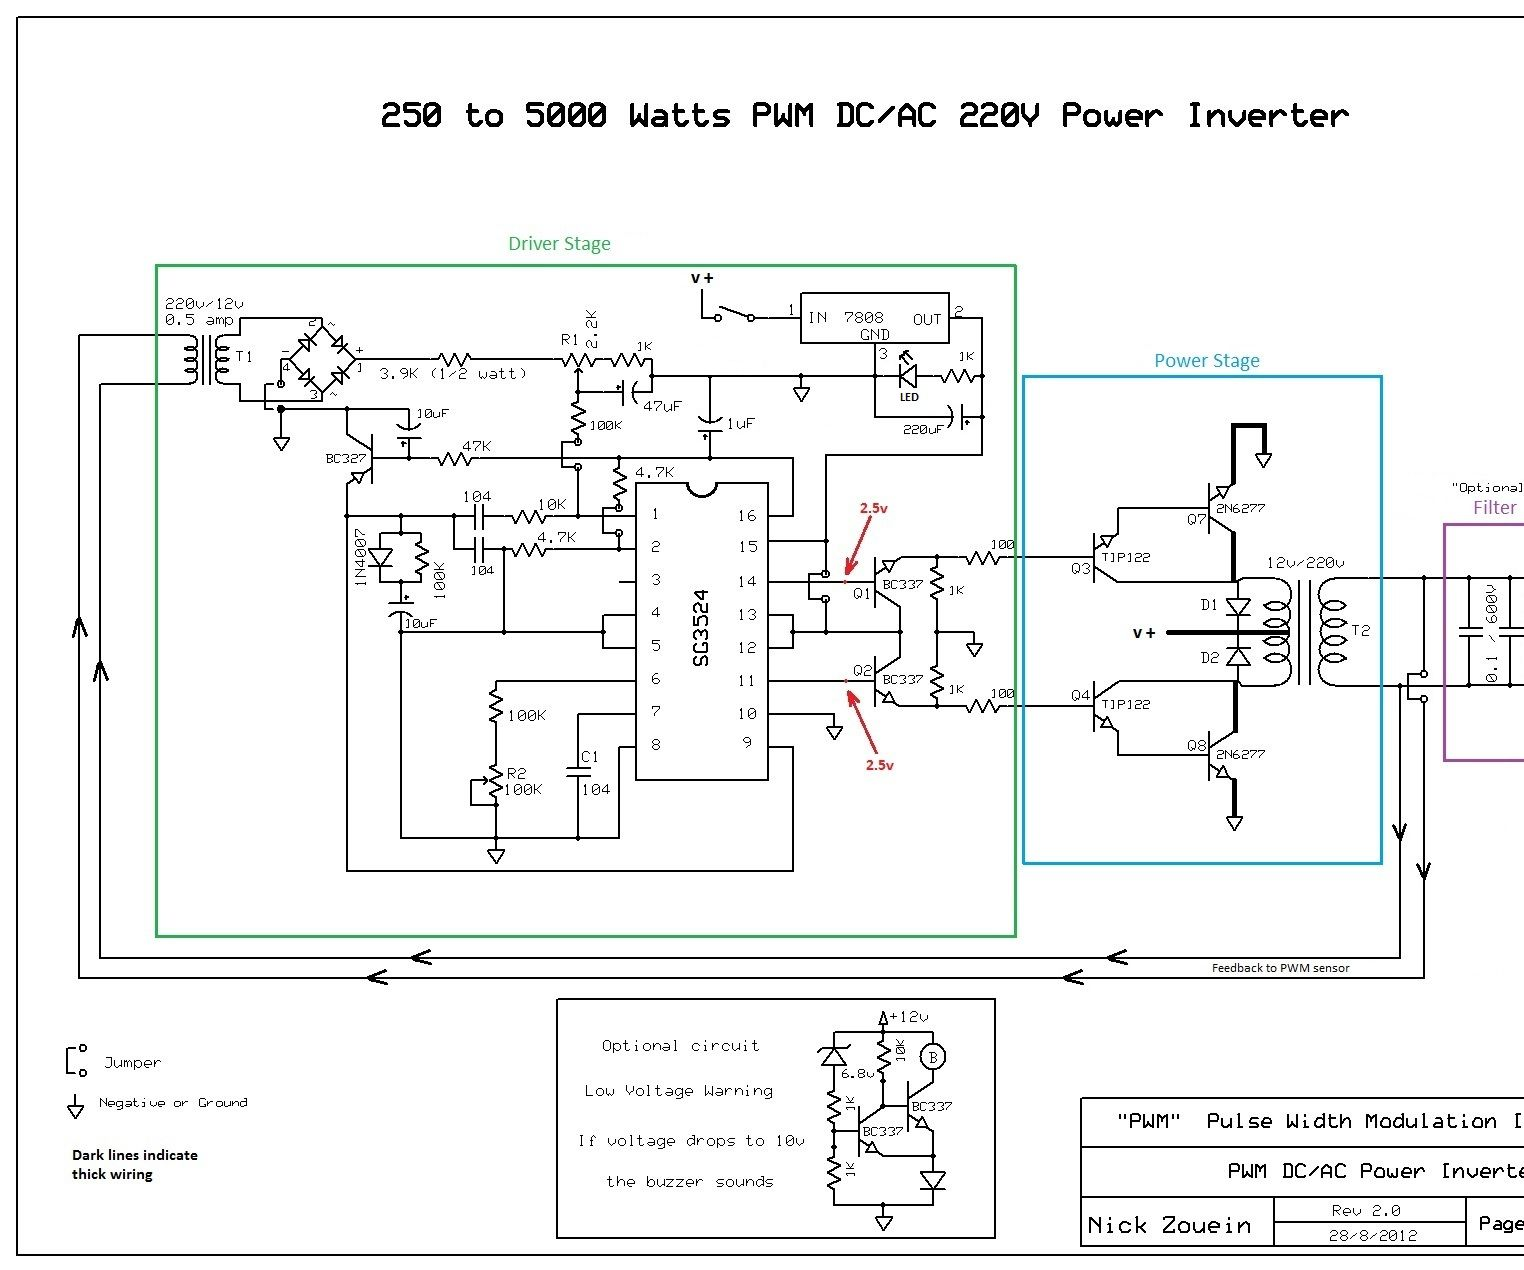 medium resolution of 250 to 5000 watts pwm dc ac 220v power inverter how a pure sine wave inverter works circuit diagrams askcom auto